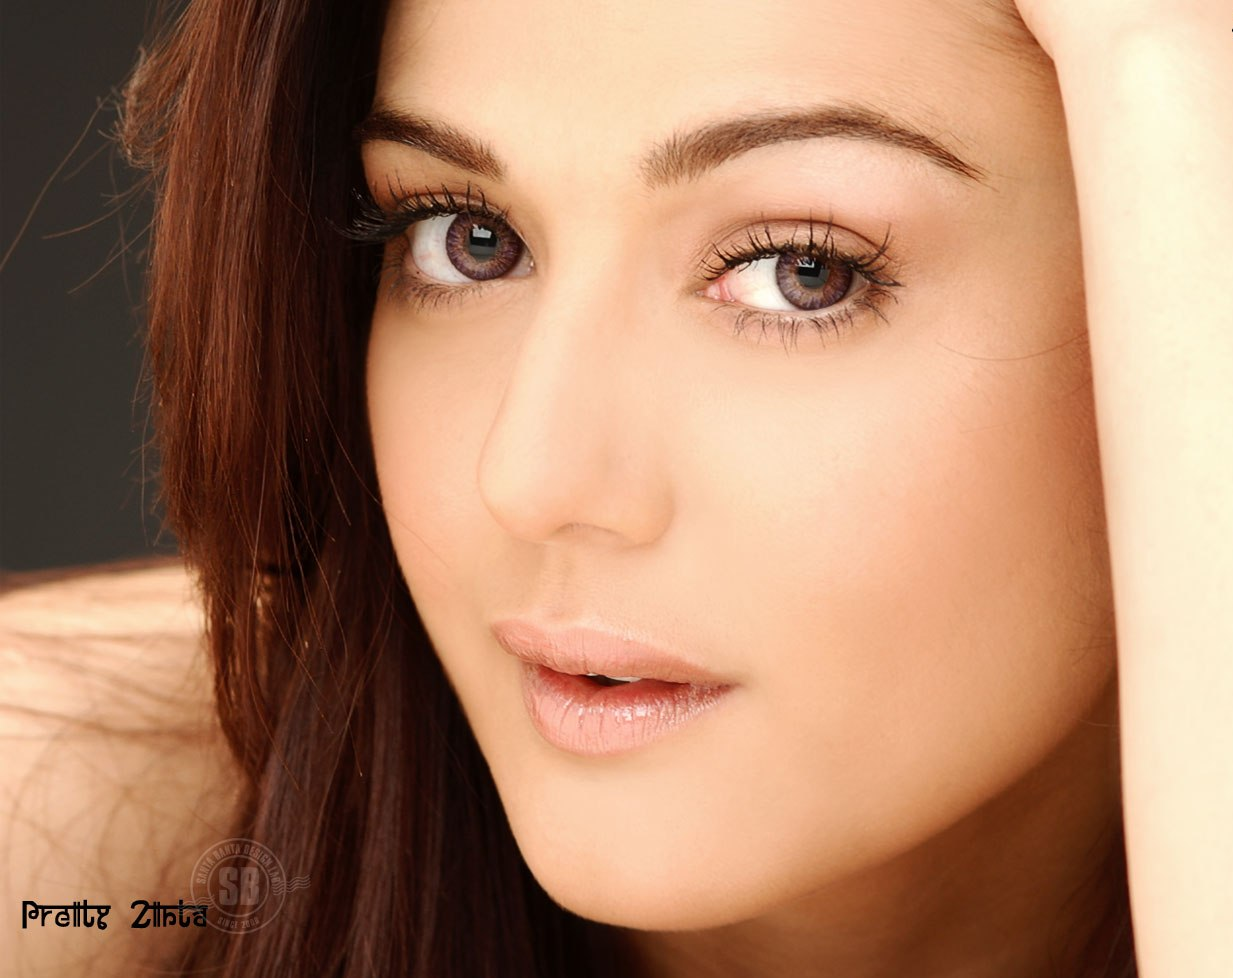 Preity Zinta Hot Pictures, Photo Gallery & Wallpapers